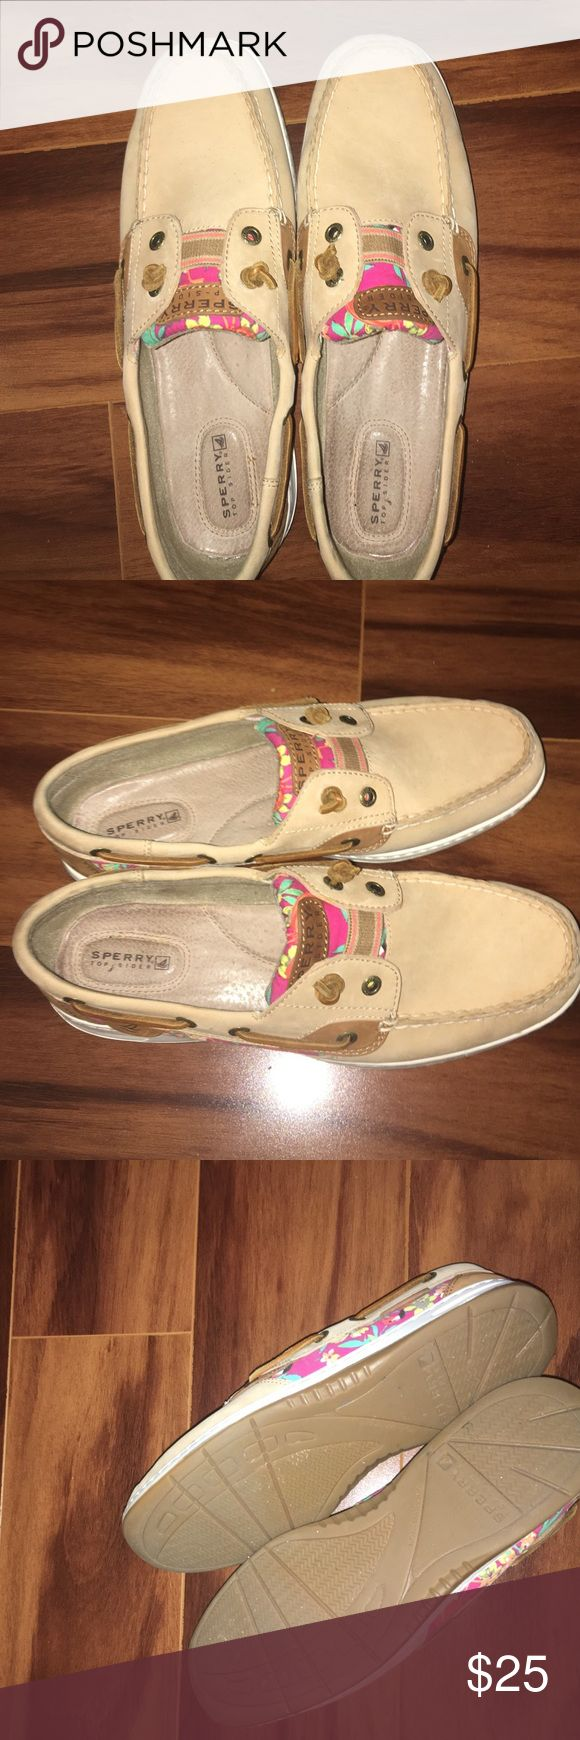 Ladies Sperry Size 10 Shoes Worn Once Sperry Shoes Worn Once Size 10 Sperry Shoes Flats & Loafers